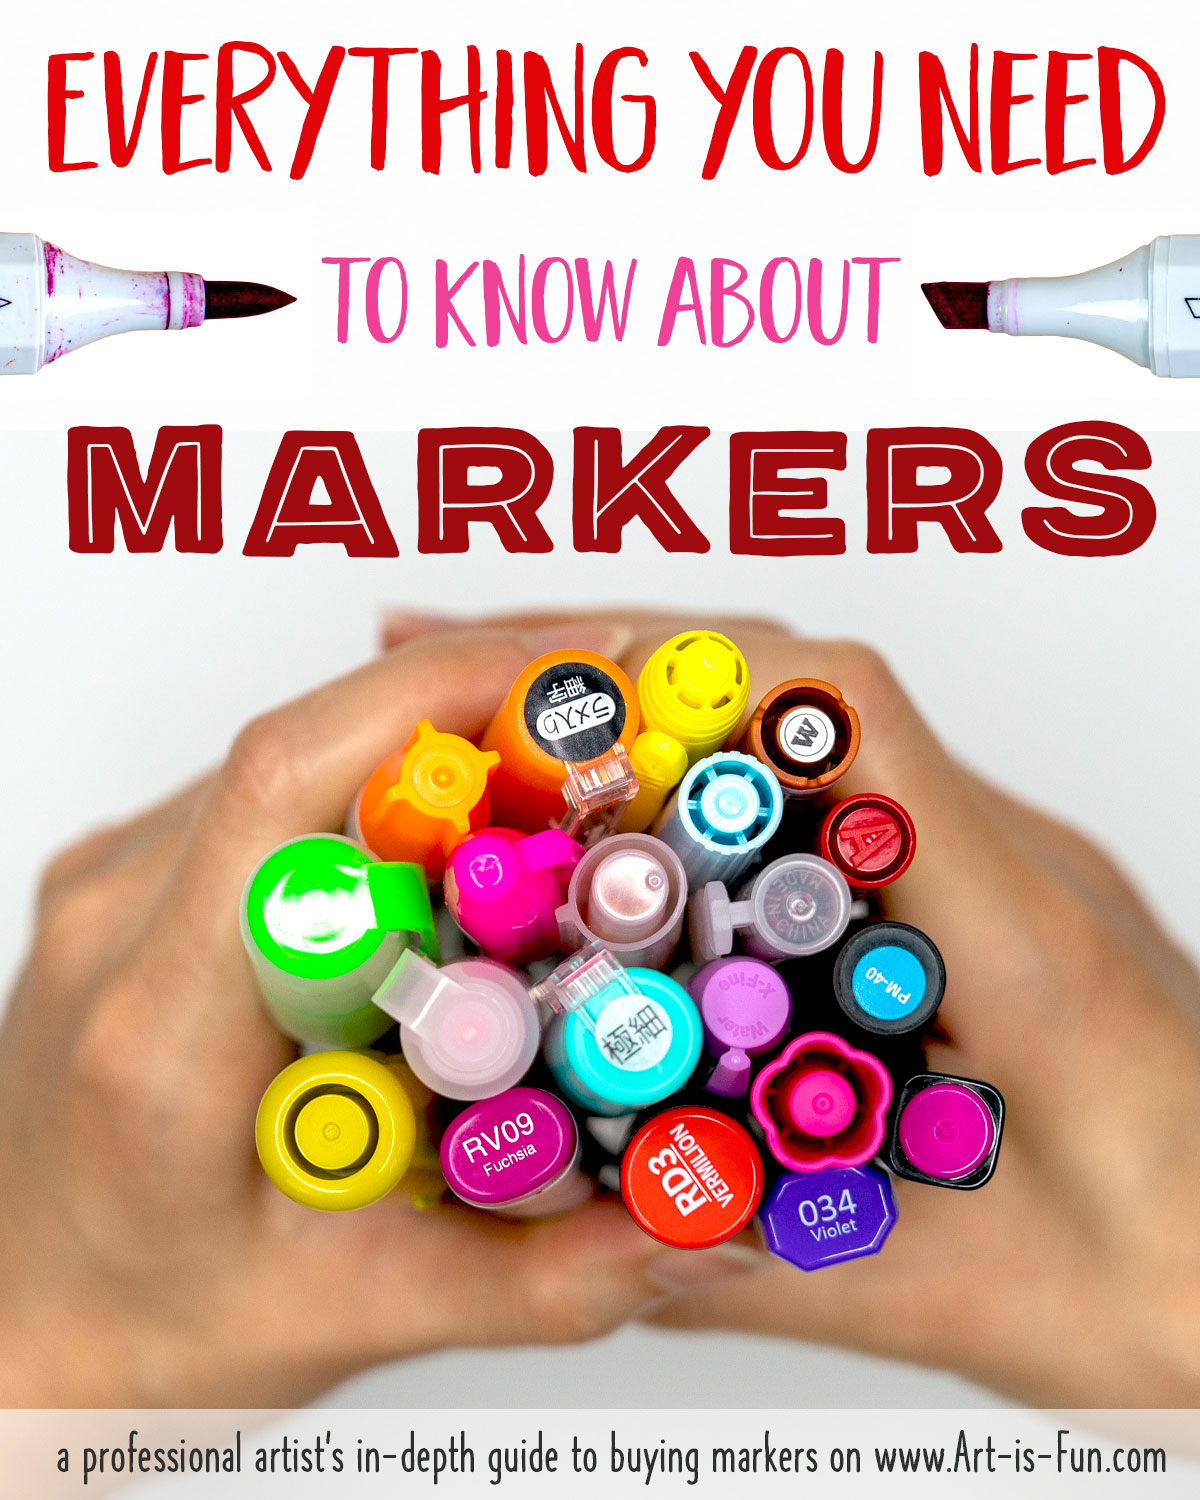 plete guide to ing markers Thaneeya McArdle